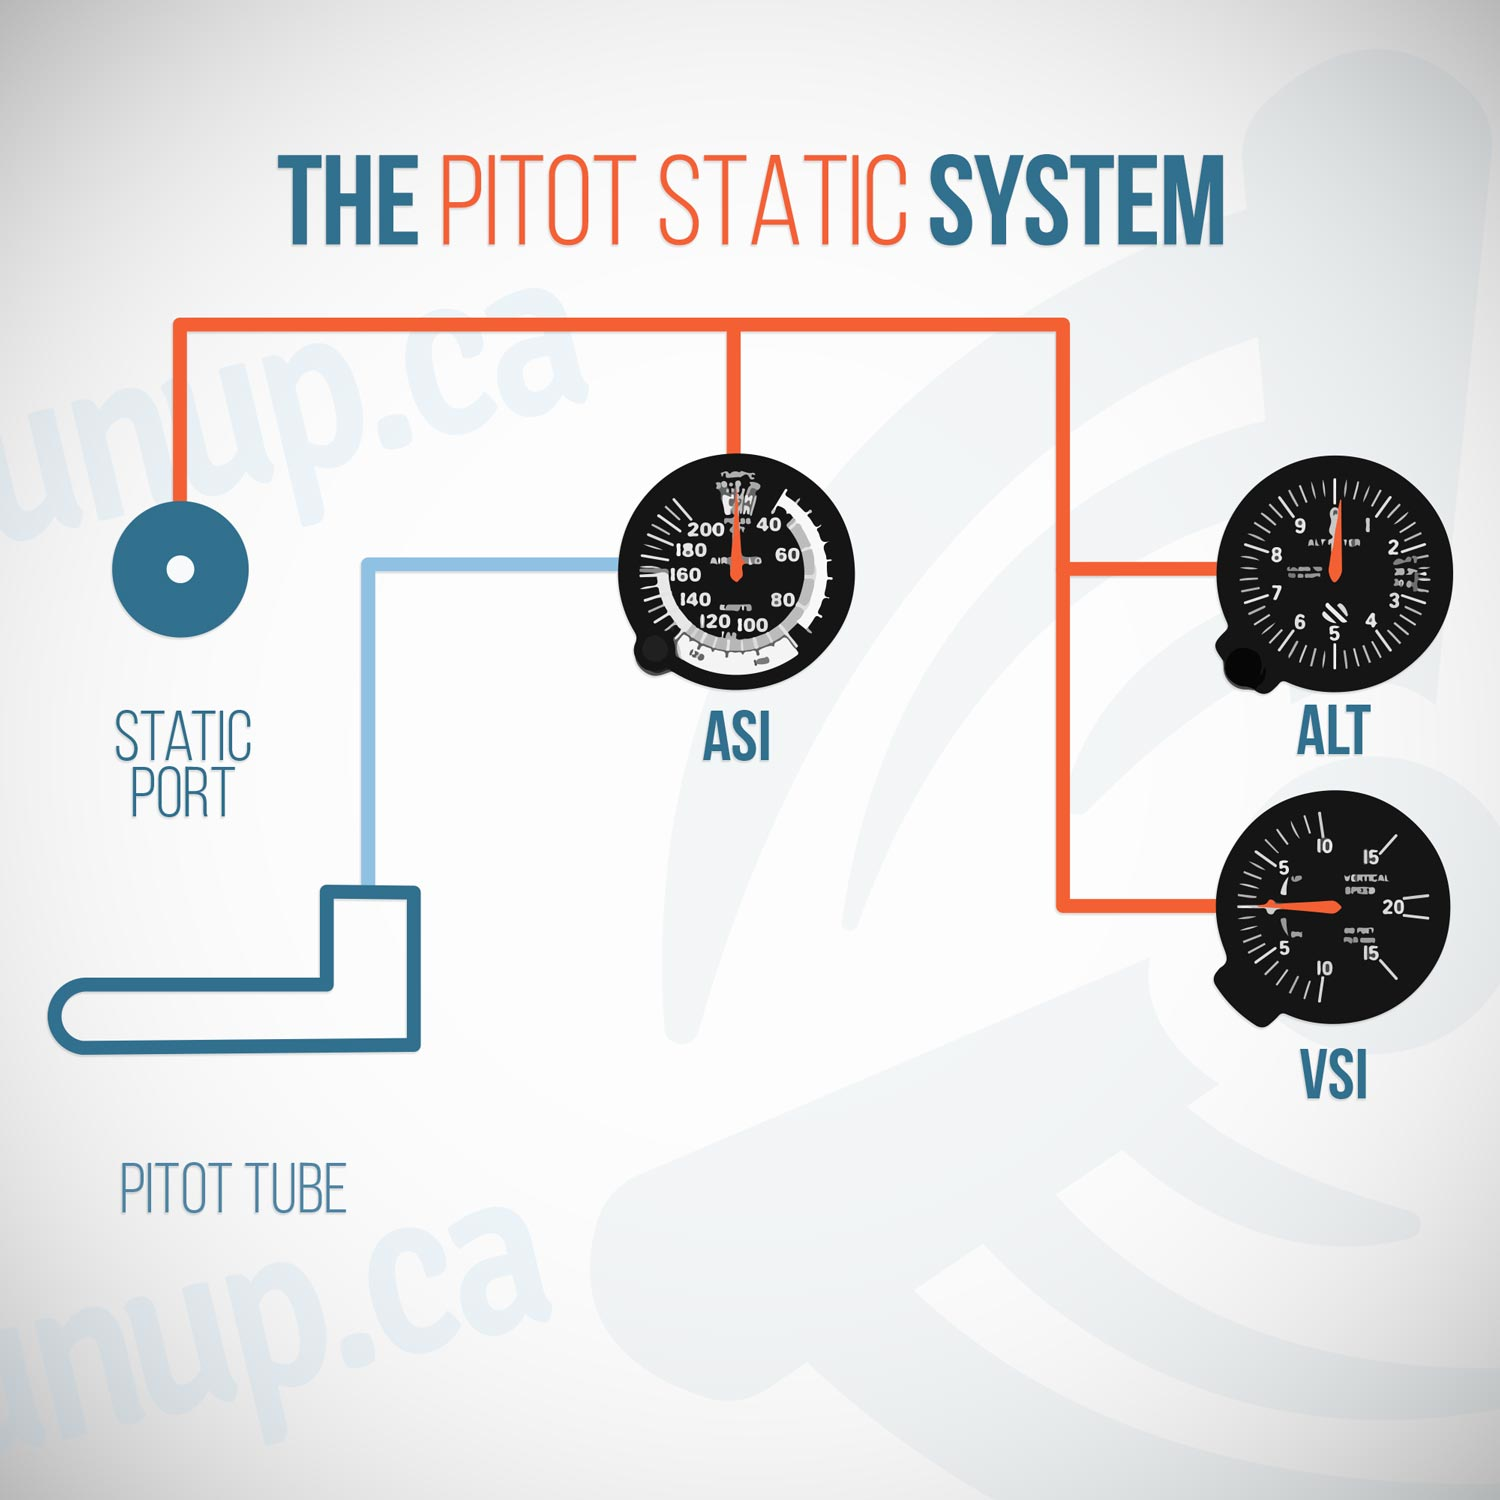 The Pitot Static System